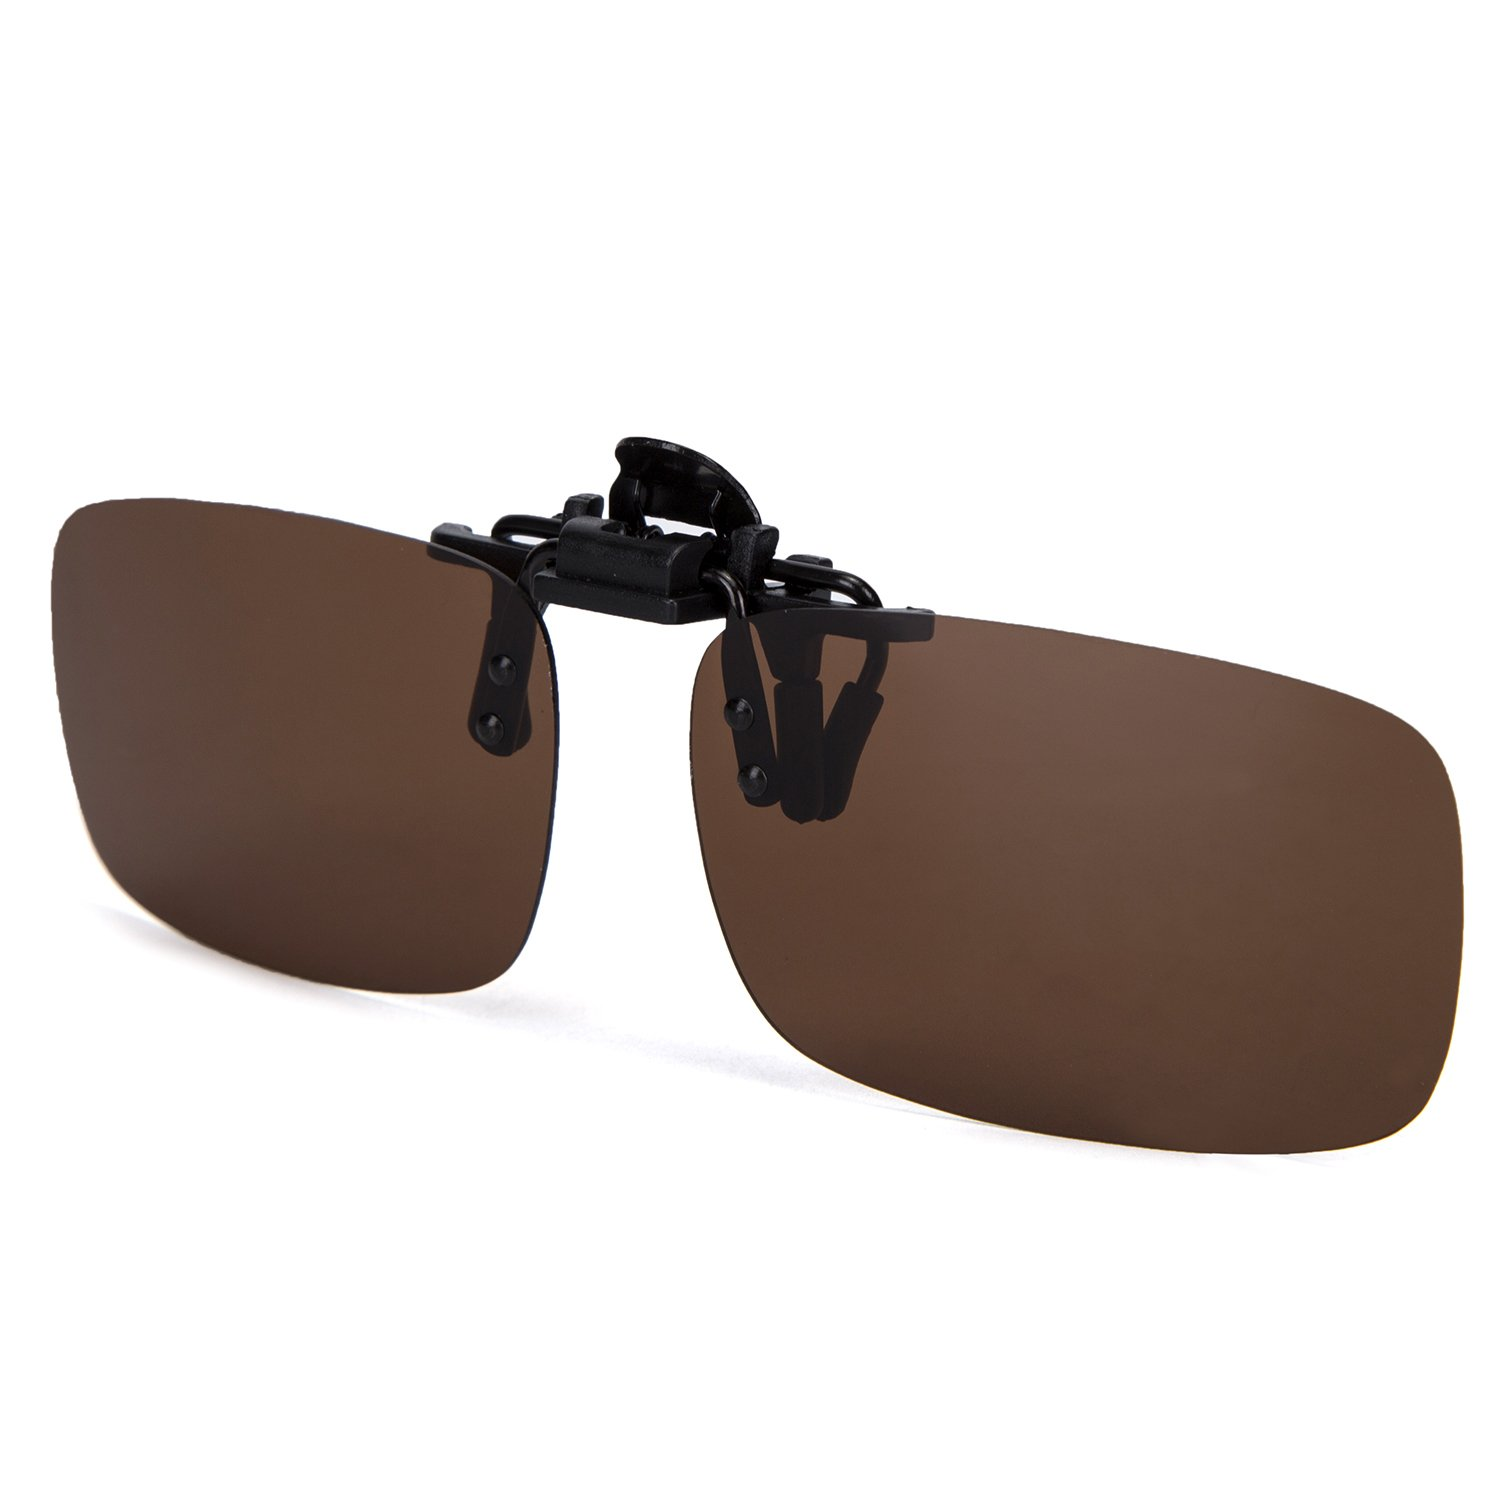 01123fed05 Amazon.com  ABIsedrin Polarized Clip-on Flip up Clip Sunglasses Lenses  Glasses Lightweight Driving Fishing Outdoor Sports Day  Night  Clothing